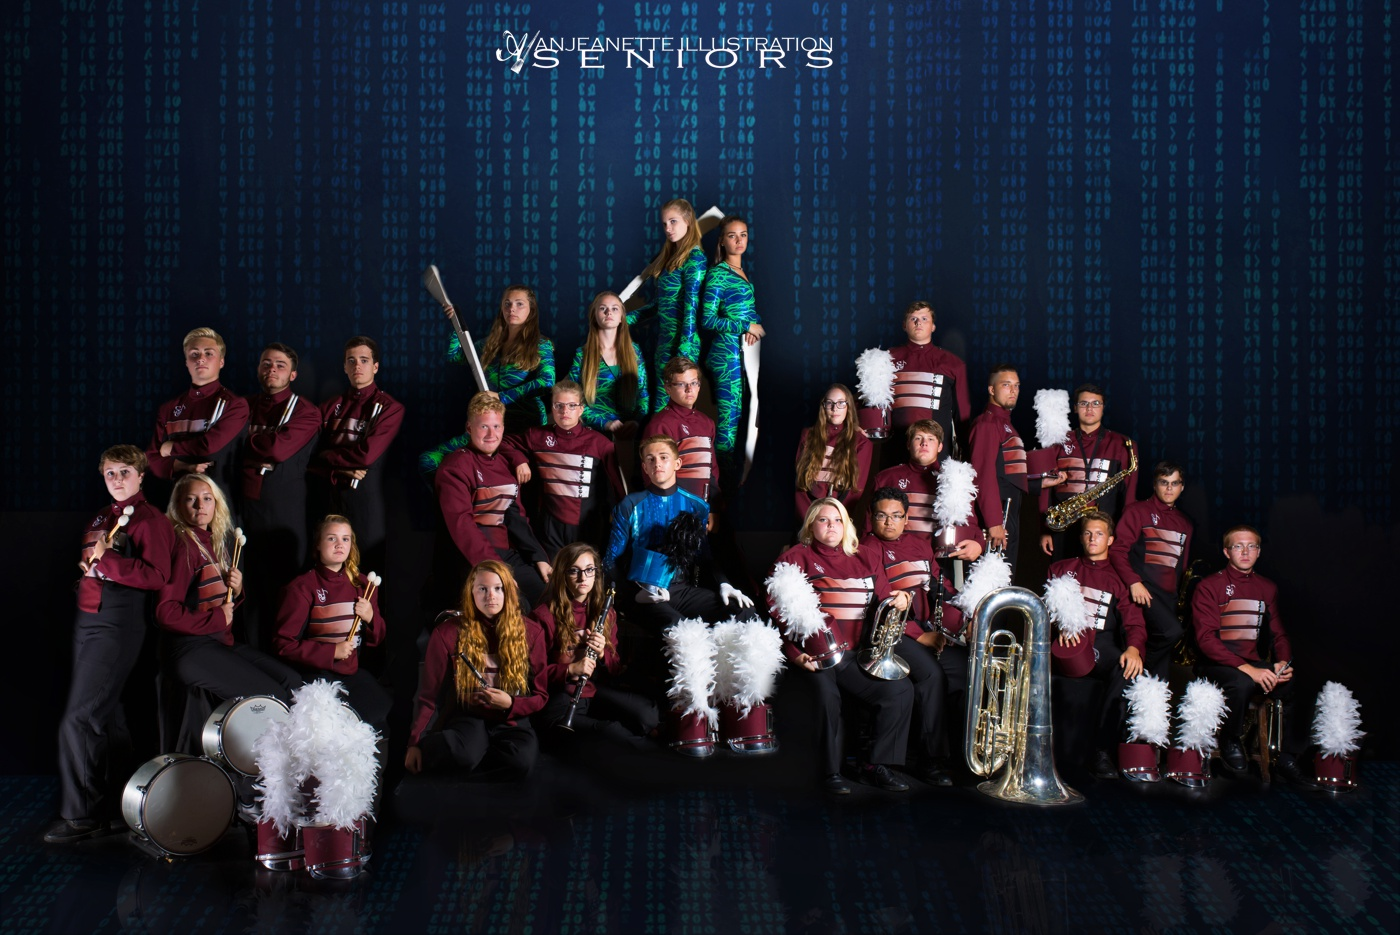 Peoria Az marching band color guard winterguard DCI drum corps WGI senior grad pictures by Anthem Glendale Az high school portrait photographer Anjeanette Photography Phoenix Shadow Mountain